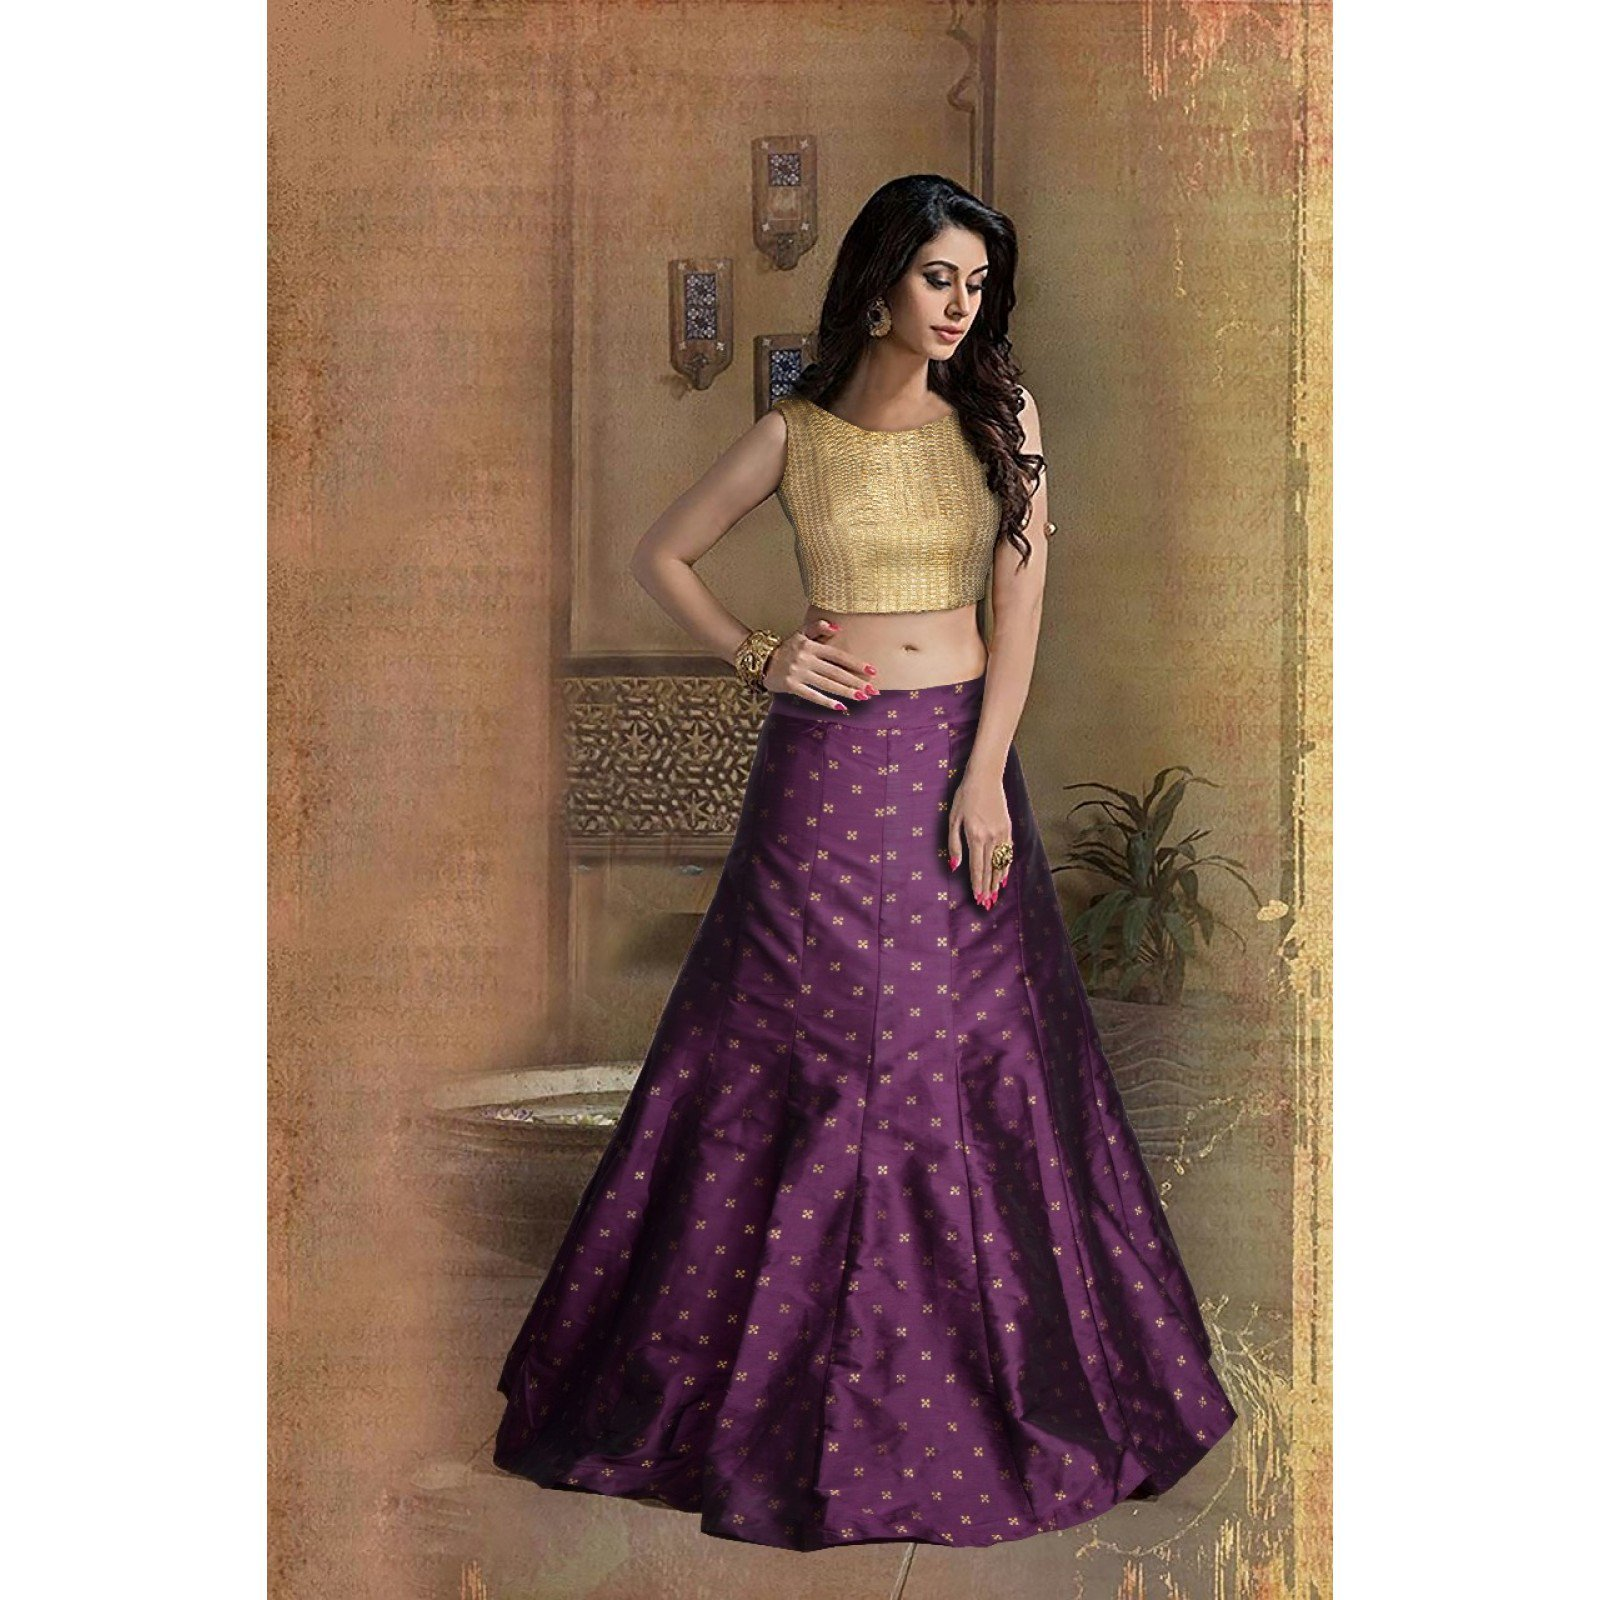 Tired of the Old Lehenga Choli? Here Are 5 Unconventional Ways You Can Rock Your Lehenga